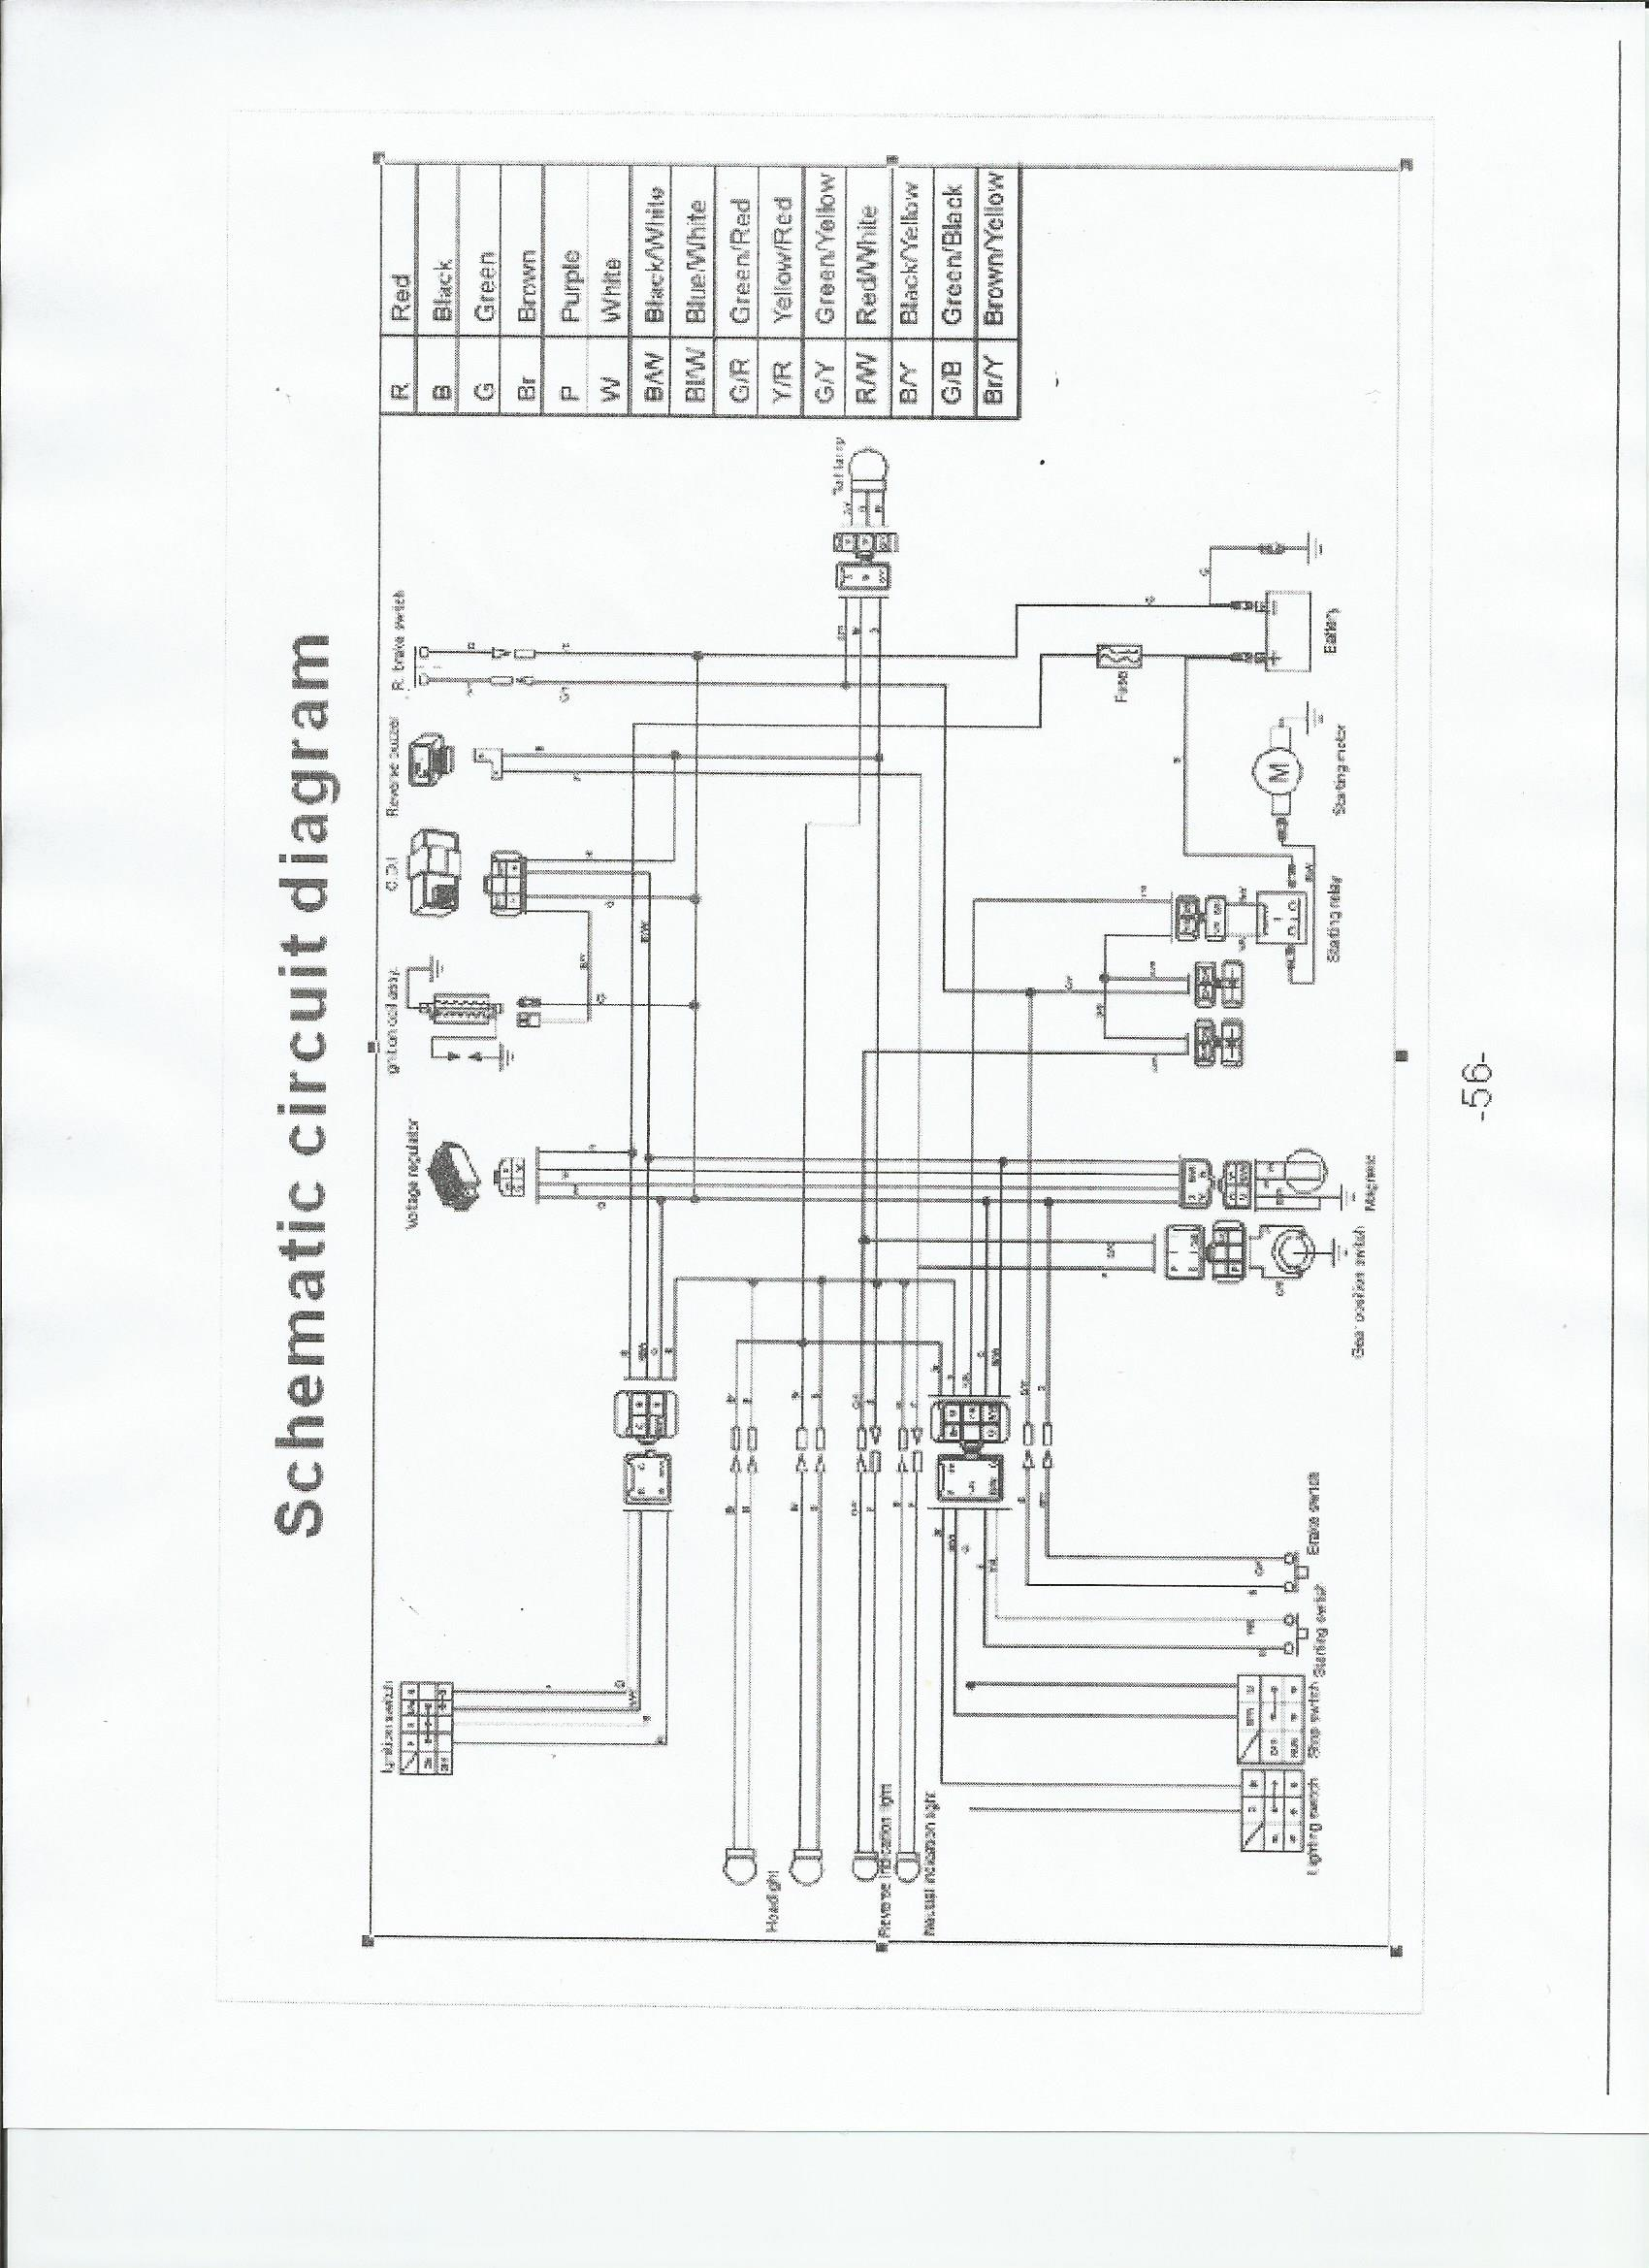 5ef35c7 2005 honda rancher wiring diagram | wiring library  wiring library